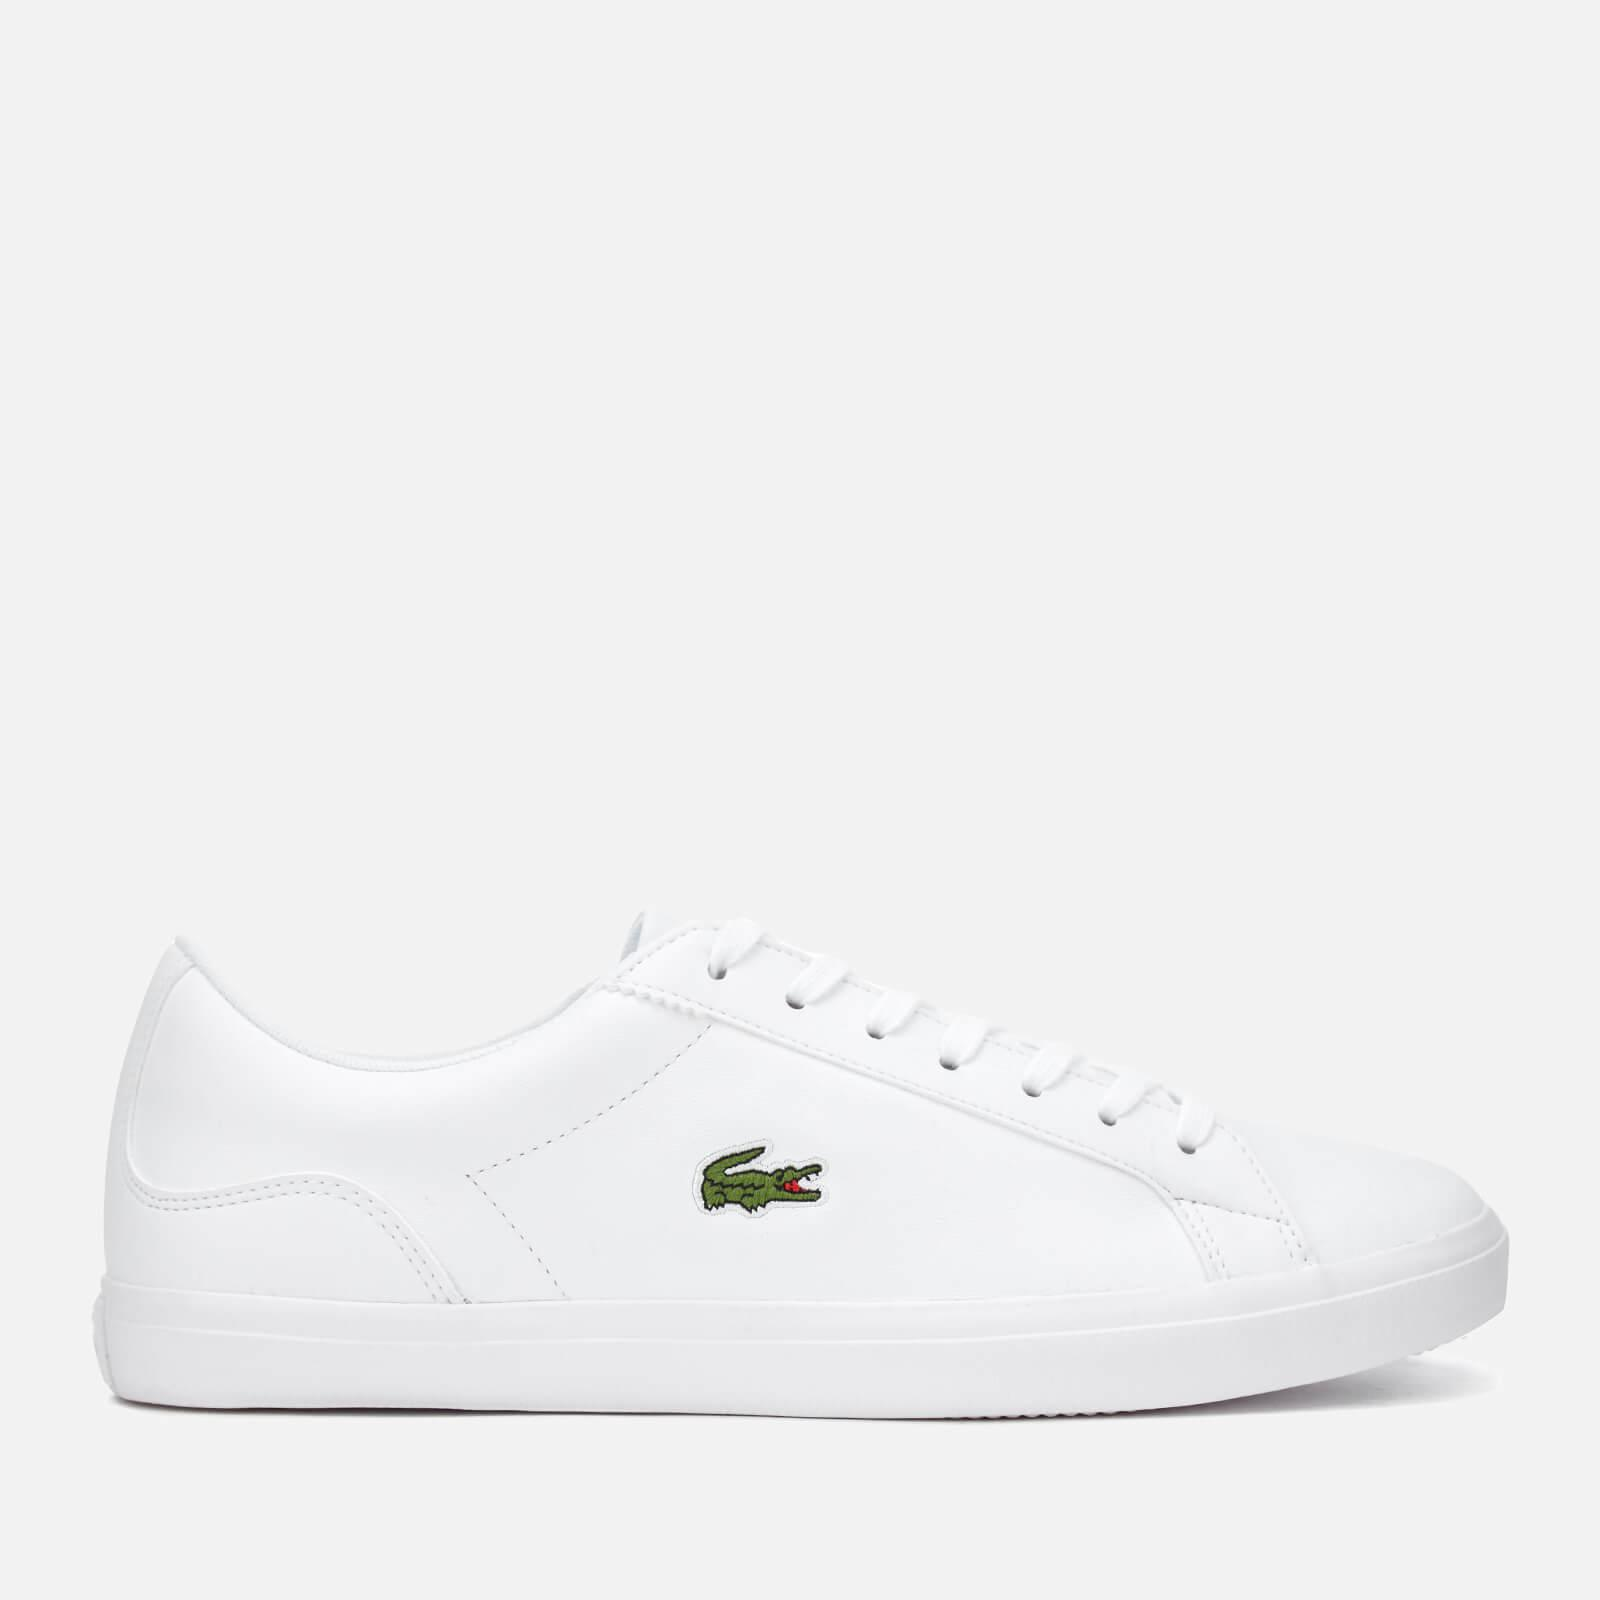 19d13f3ec2f20 Lacoste Men s Lerond 316 1 Trainers in White for Men - Save 38% - Lyst